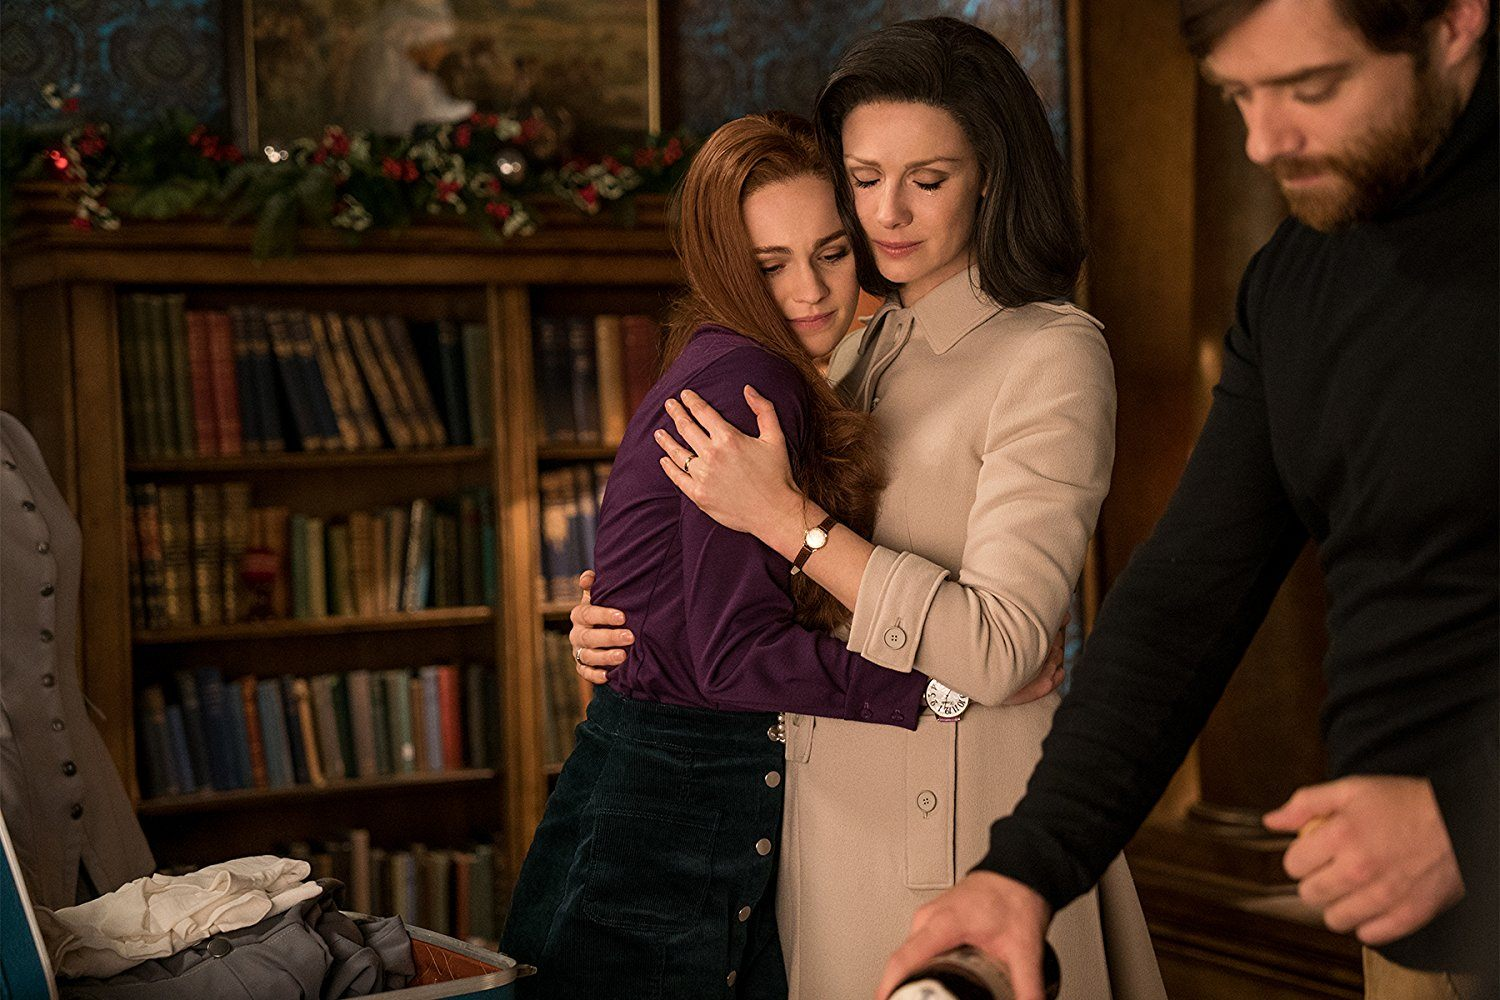 Claire and Brianna embrace